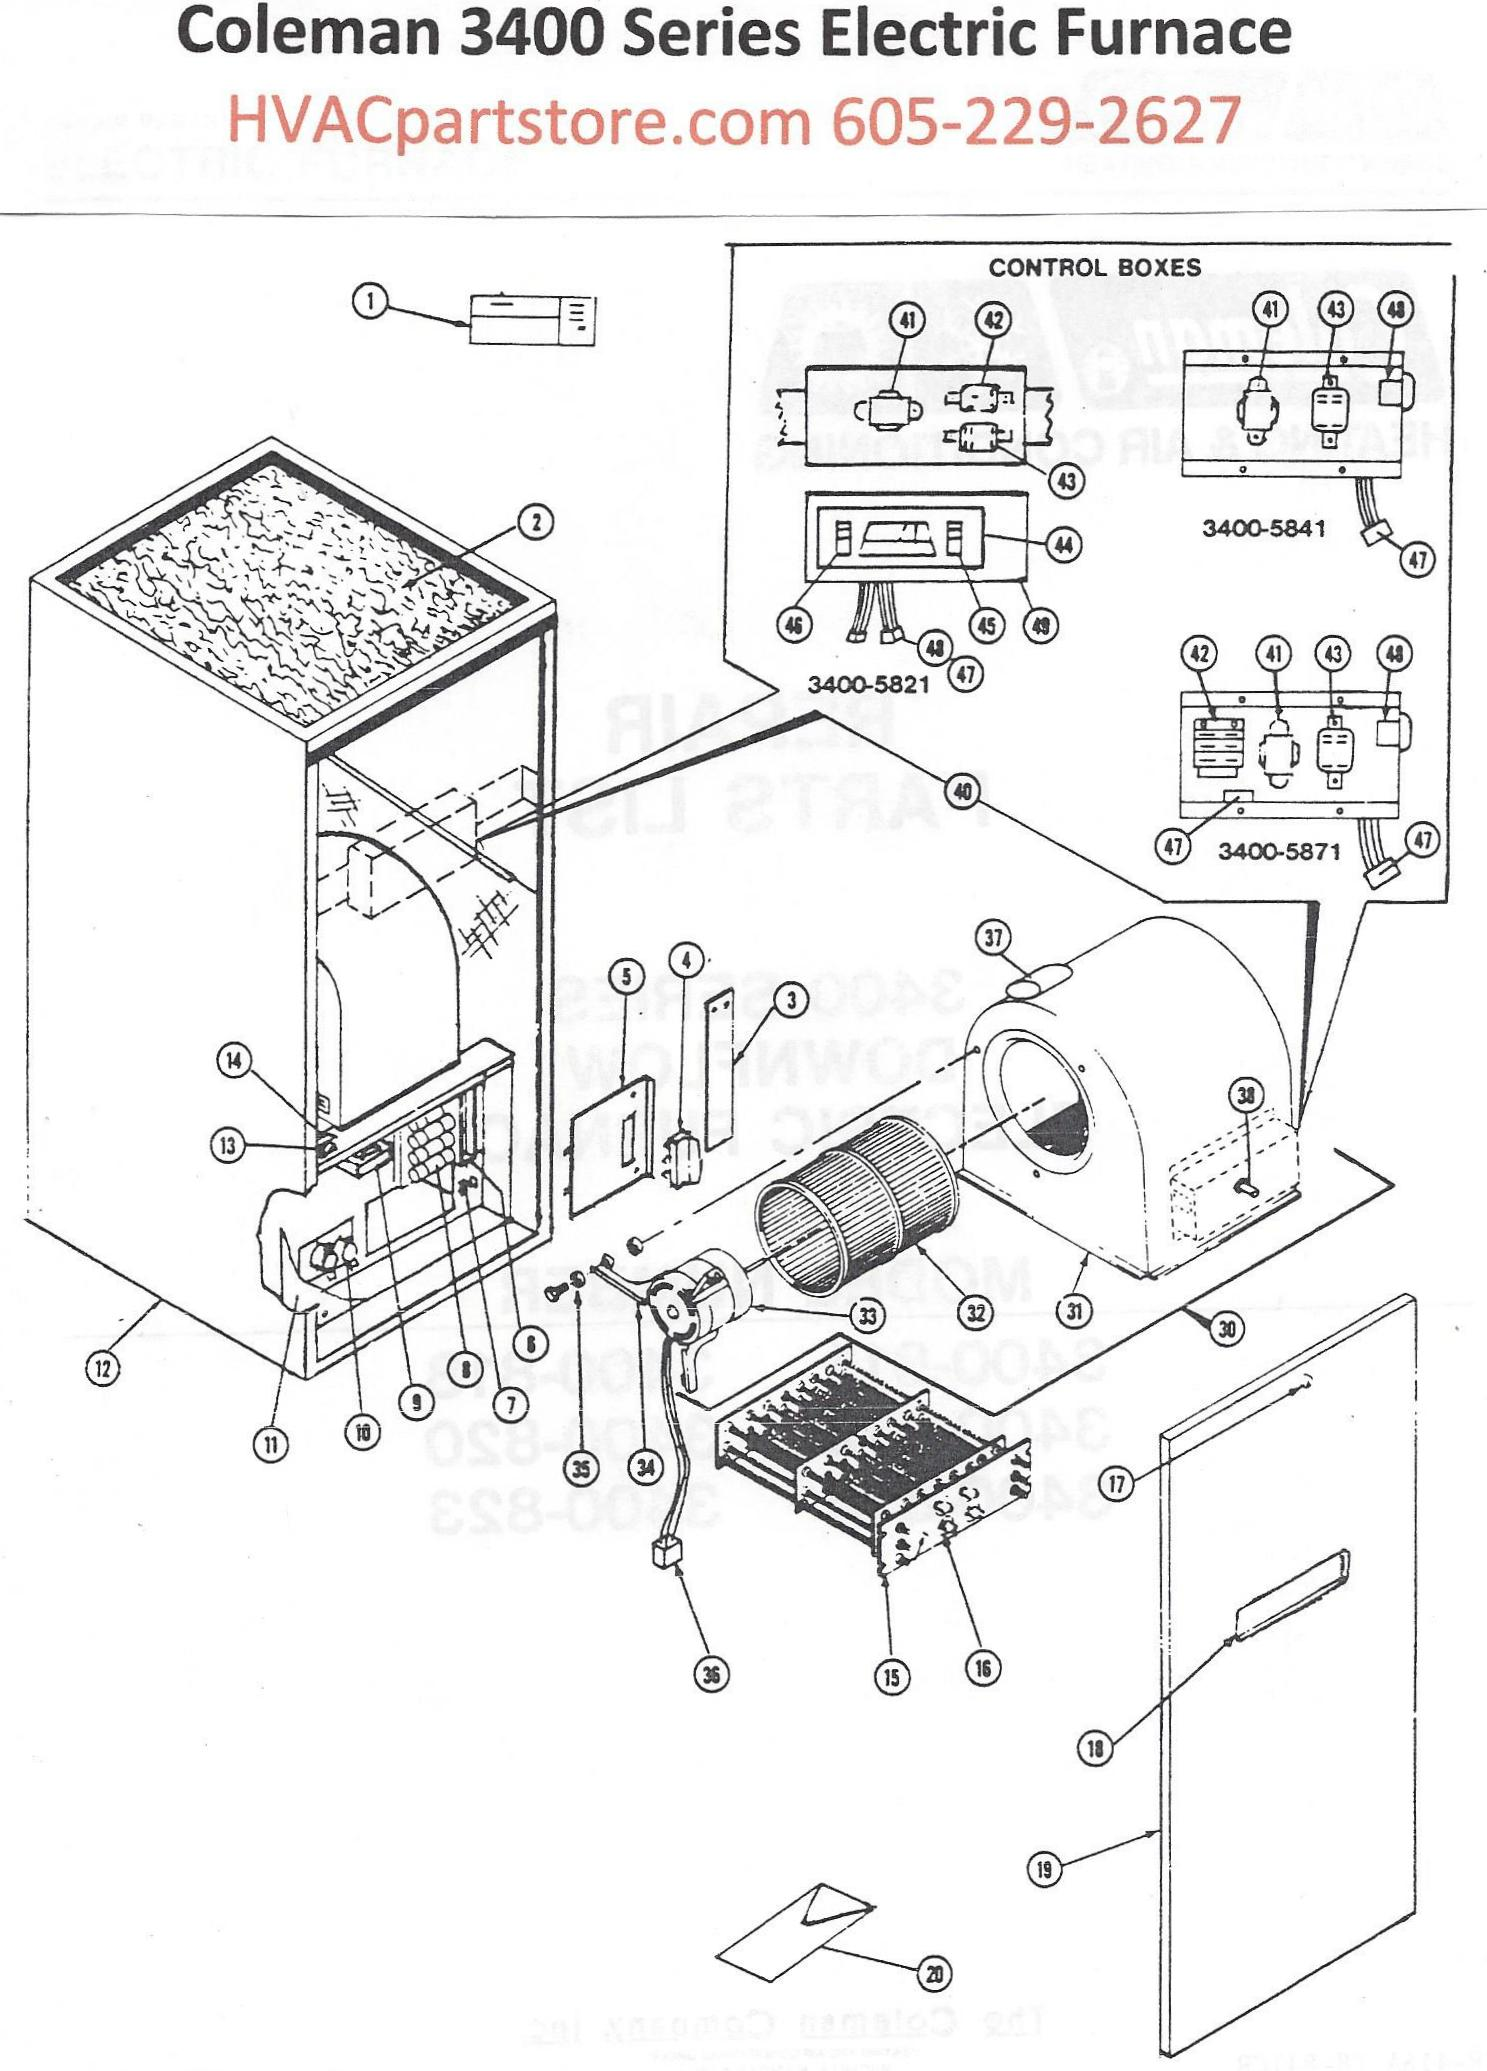 Click here to view an installation manual which includes wiring diagrams.